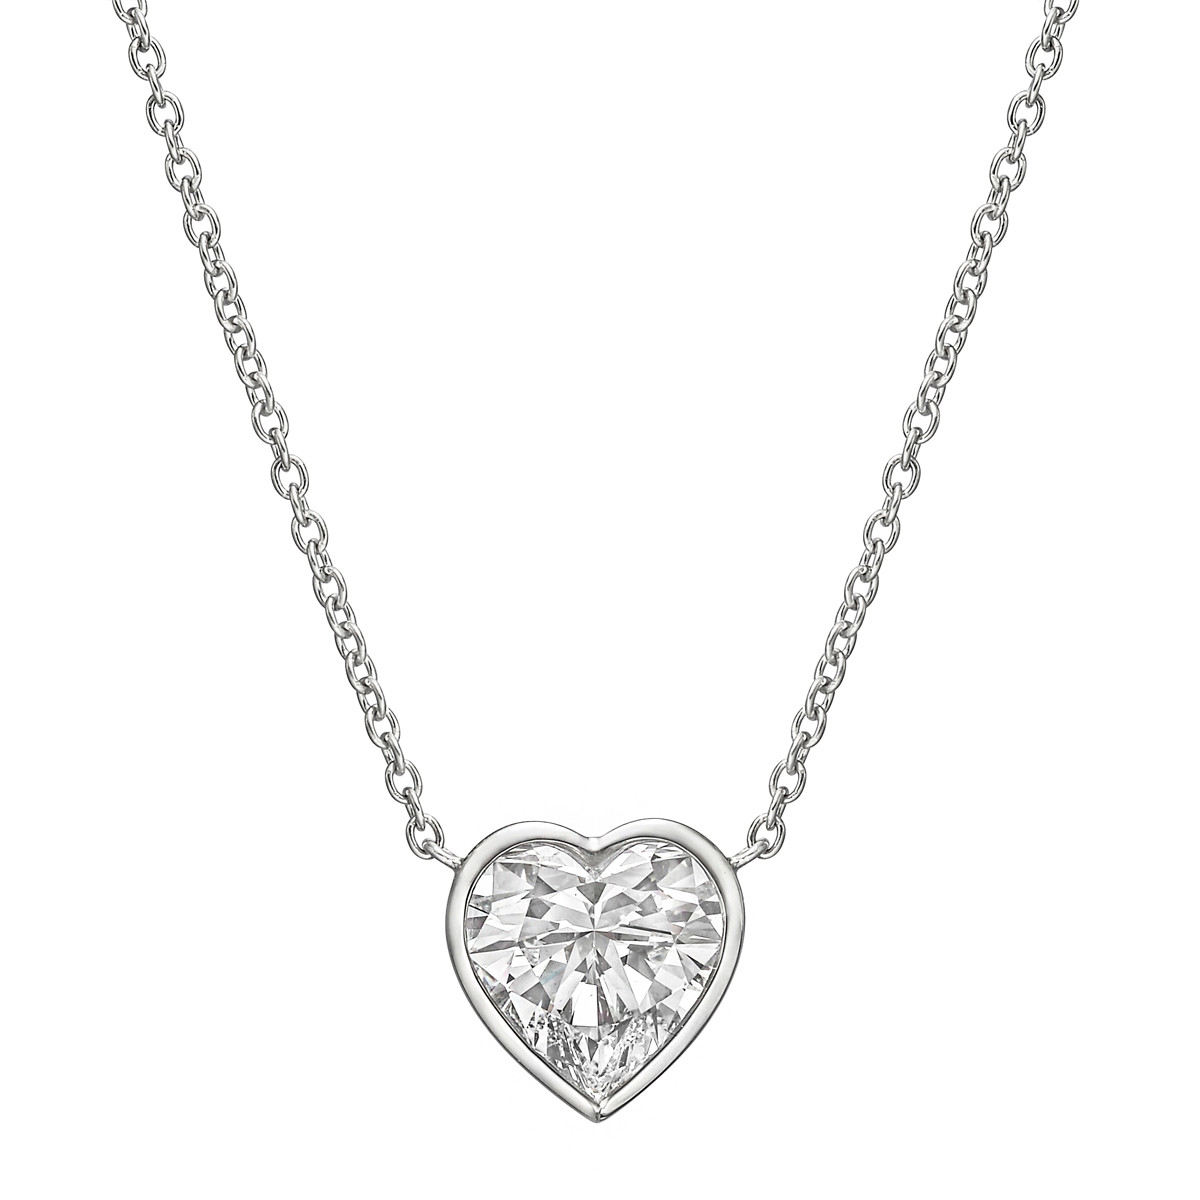 3.03ct Heart-Shaped Diamond Solitaire Pendant